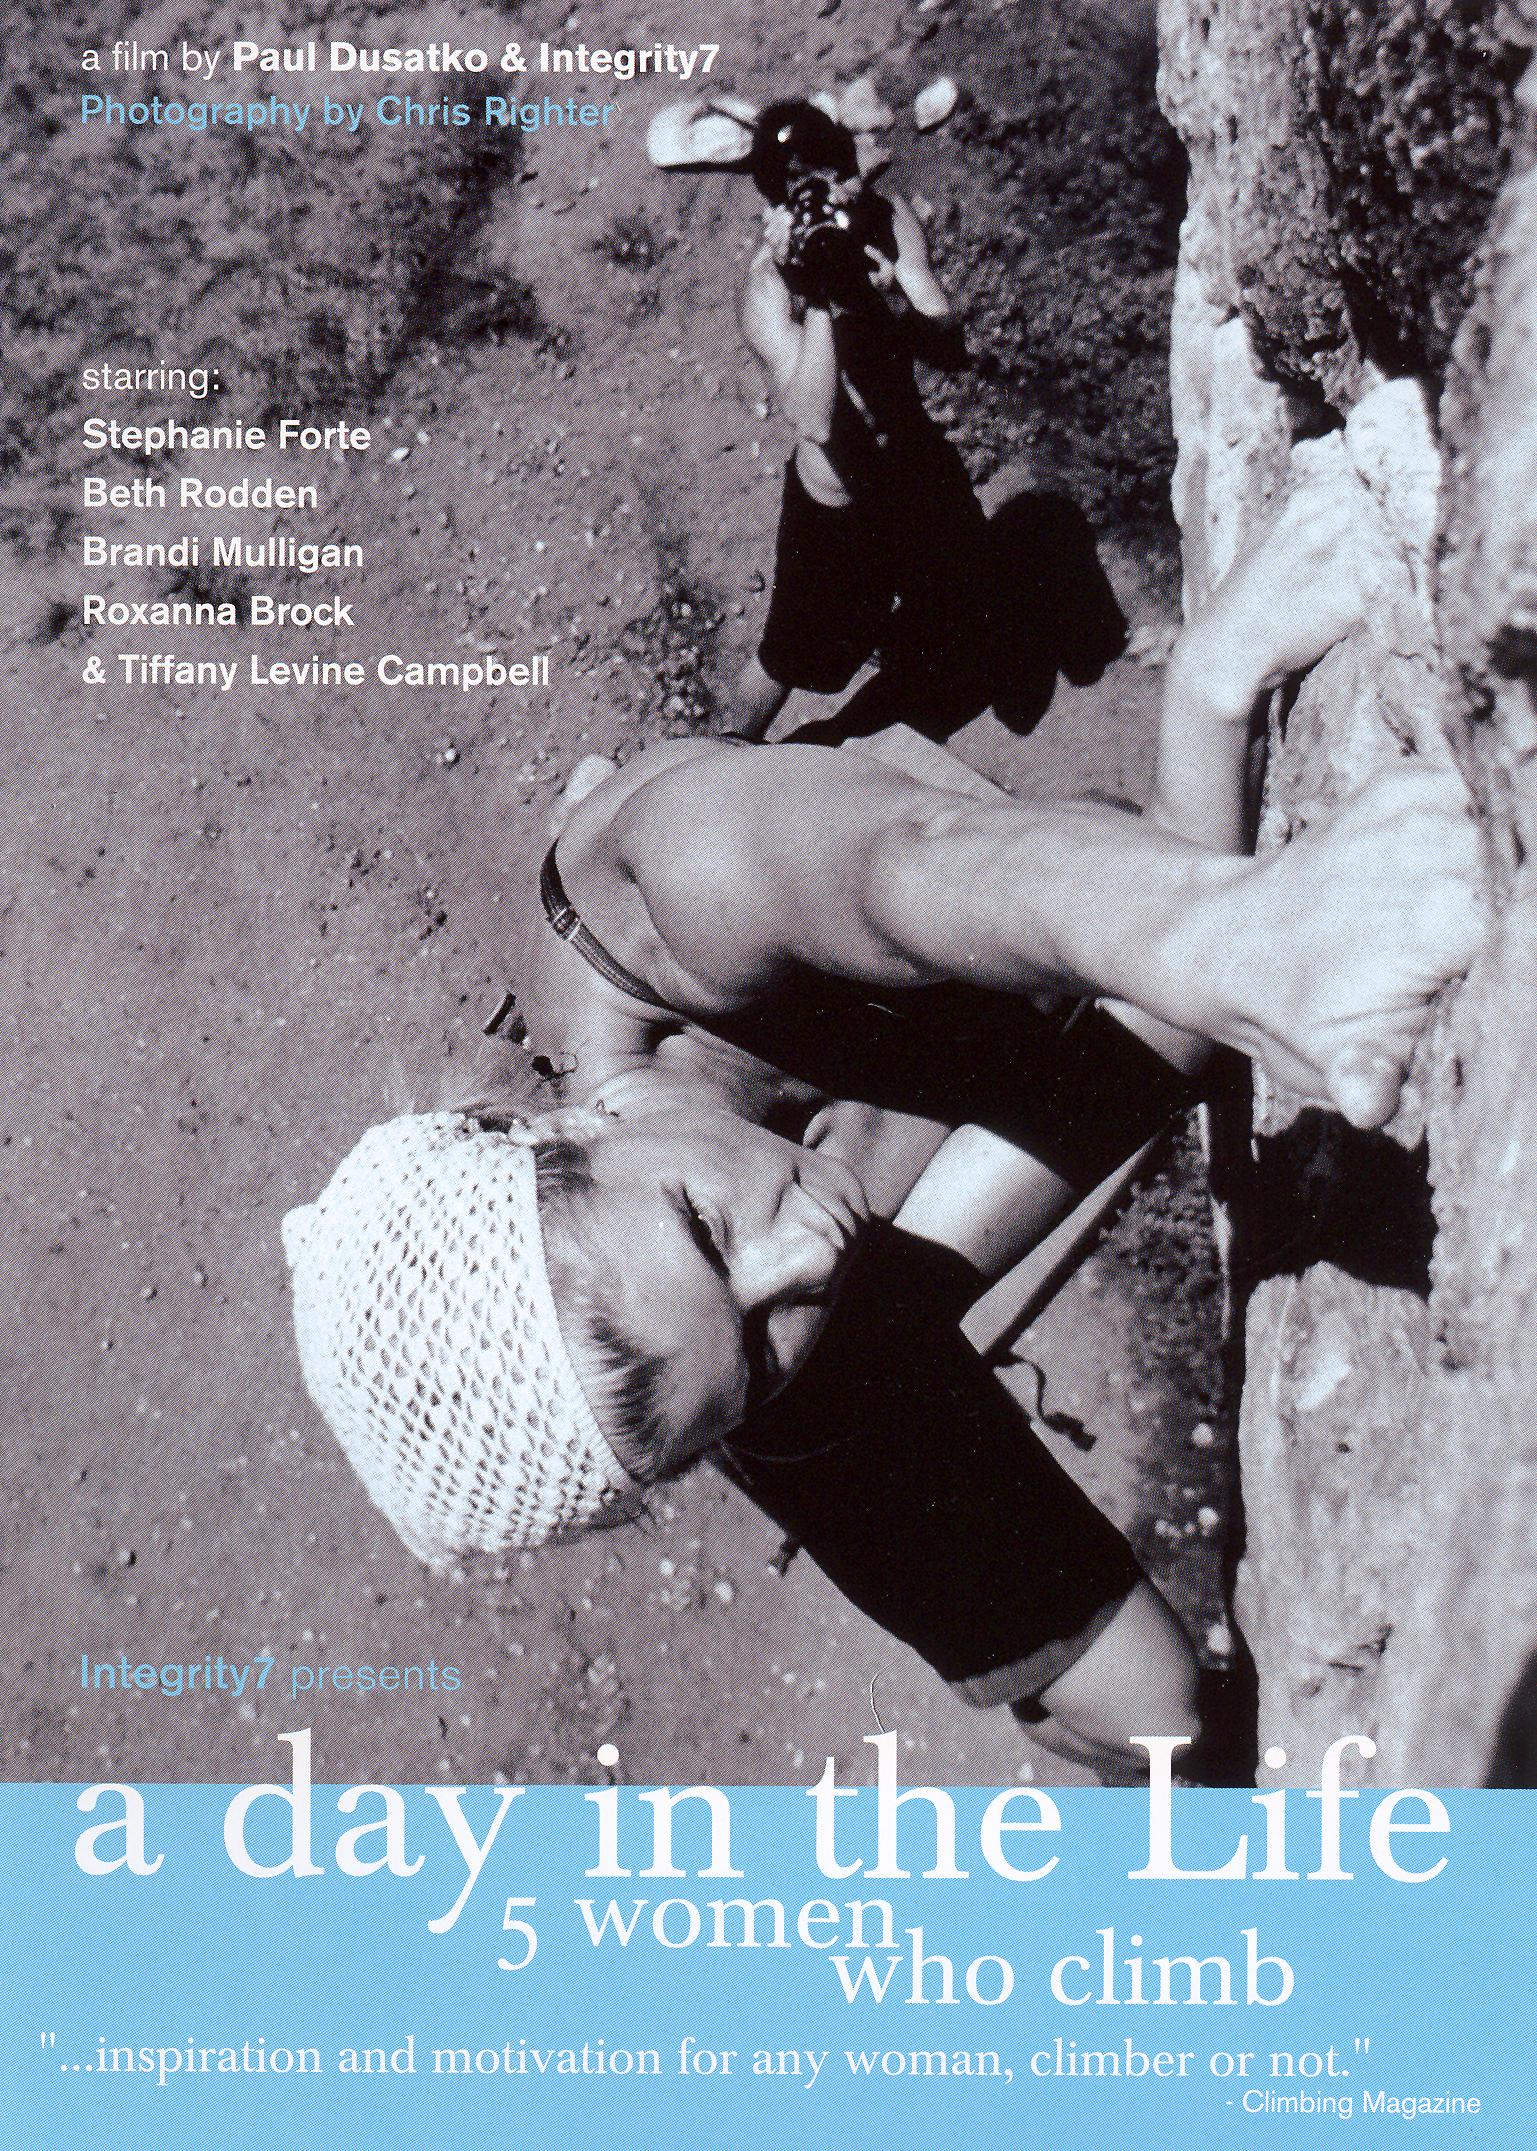 A Day In the Life: 5 Women Who Climb